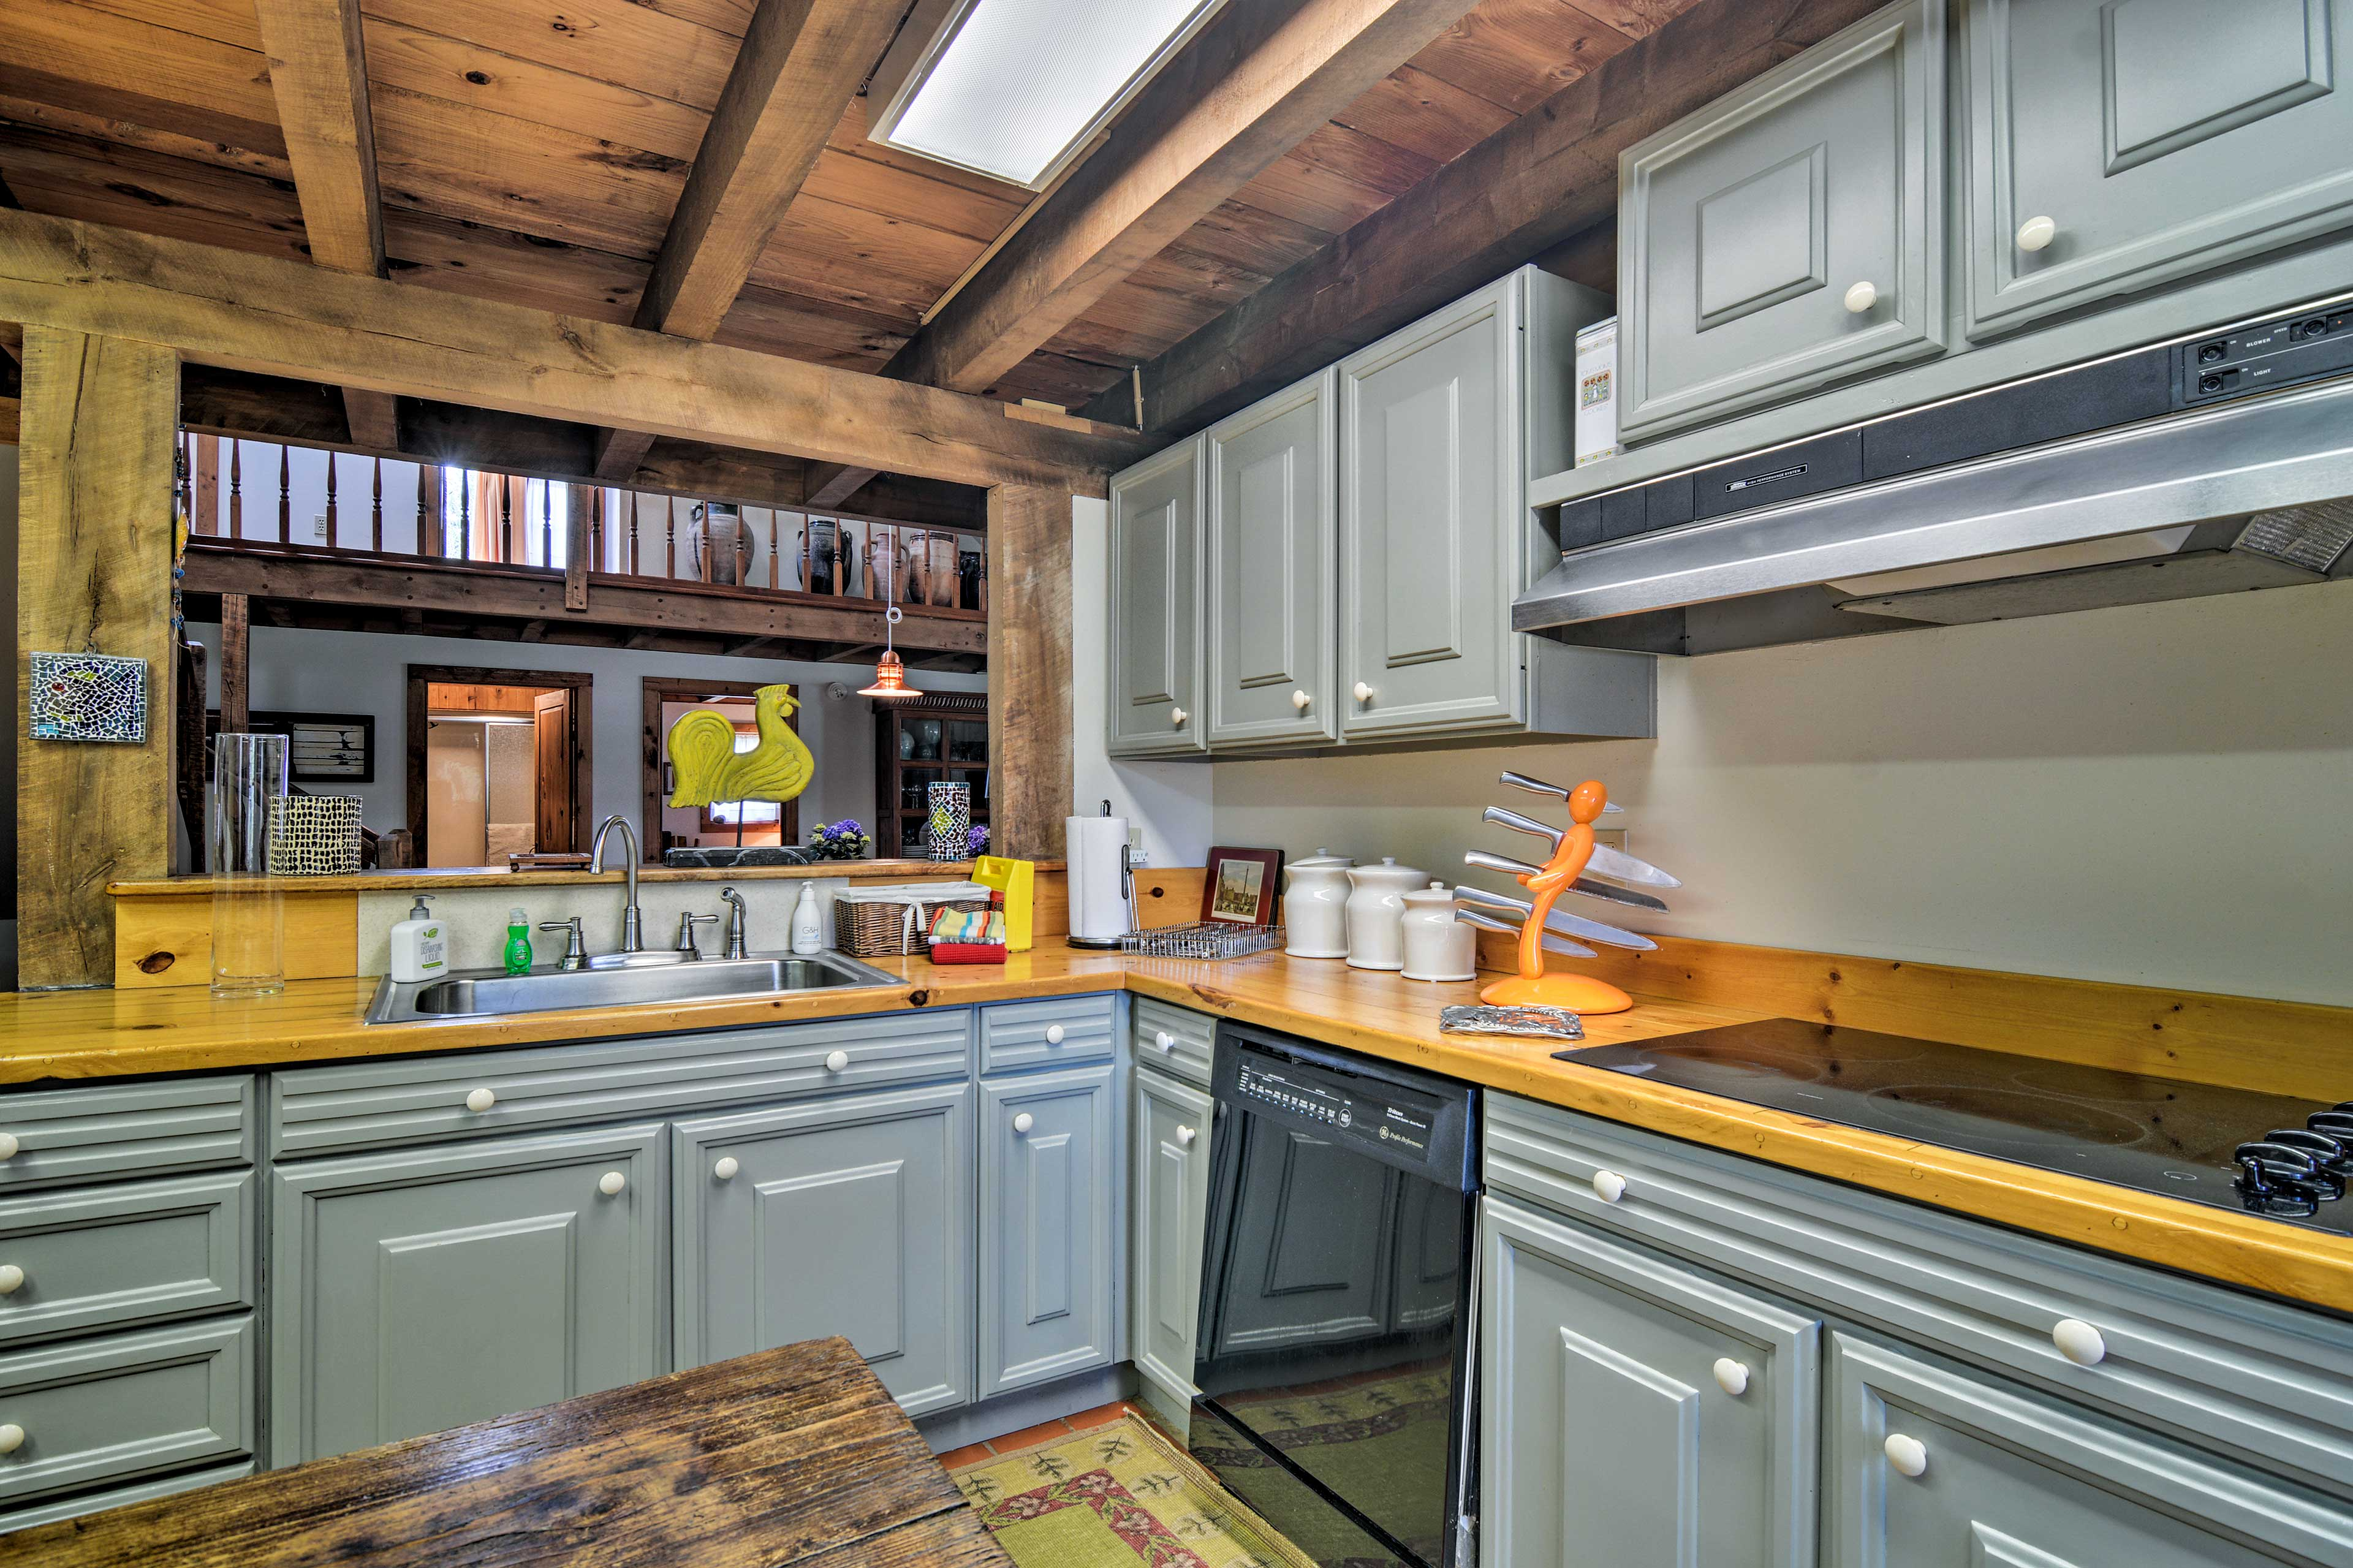 Whether you want to blend up a cocktail or toast bread, this kitchen has it all!